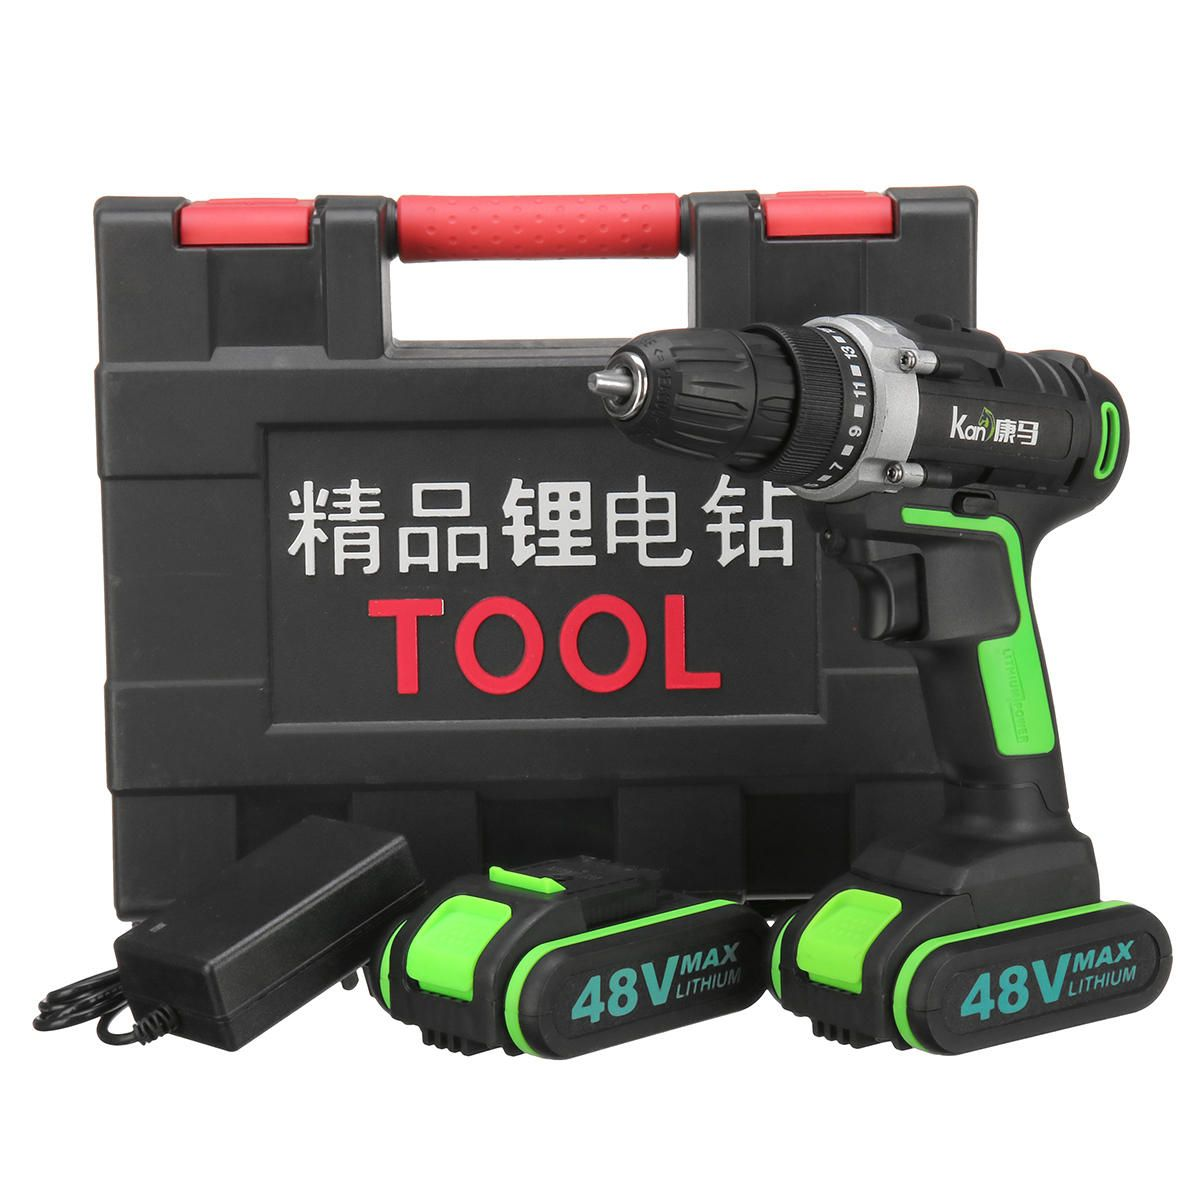 48V 3 In 1 Cordless Power Drills 15+1 Torque Drilling Tool Dual Speed Electric Screwdriver Drill W/ 1 or 2 Li ion Battery